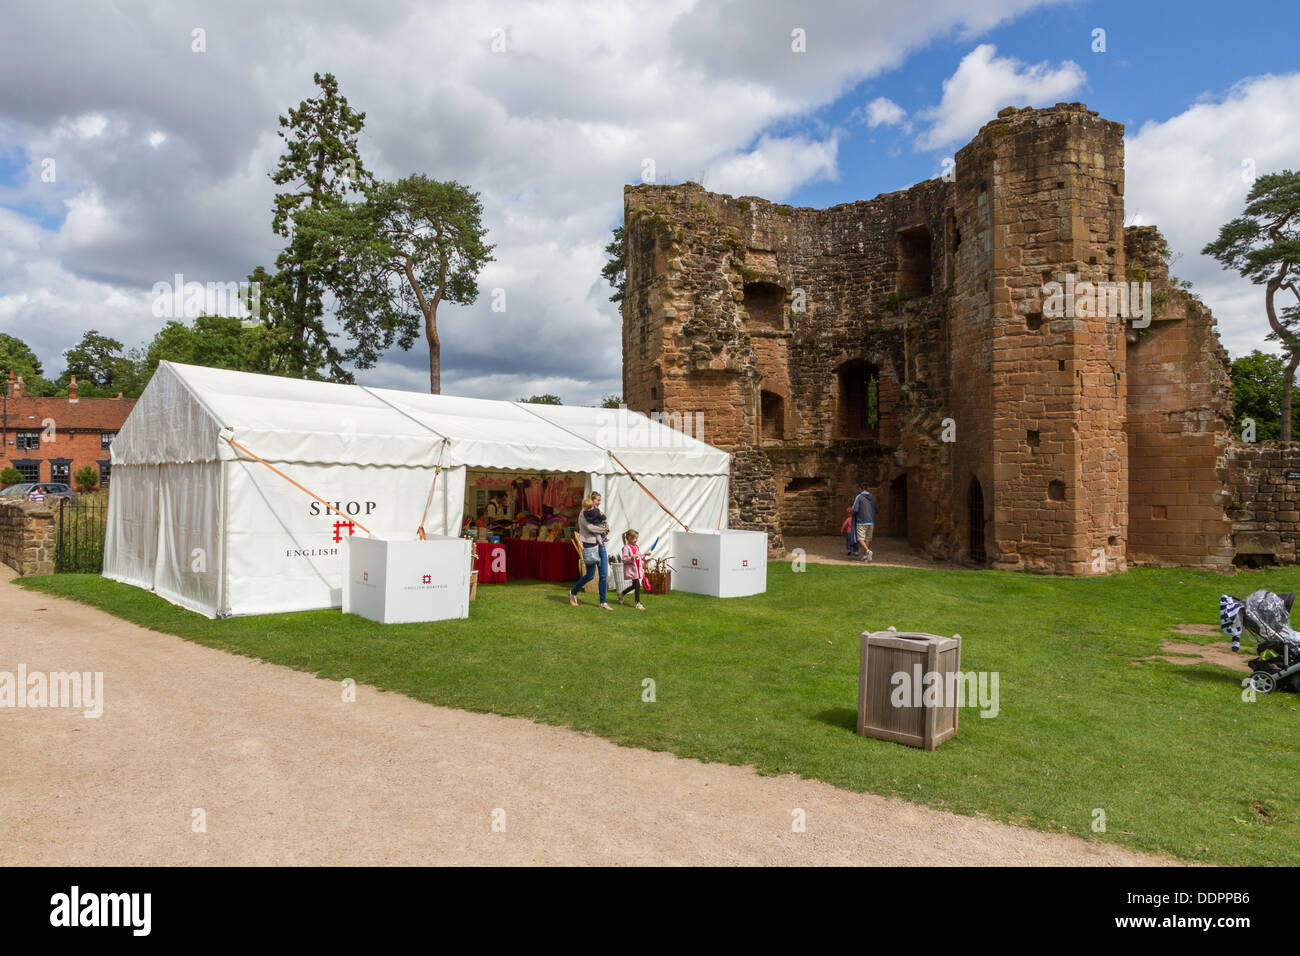 Temporary shop in the grounds of Kenilworth Castle, Warwickshire, England. - Stock Image